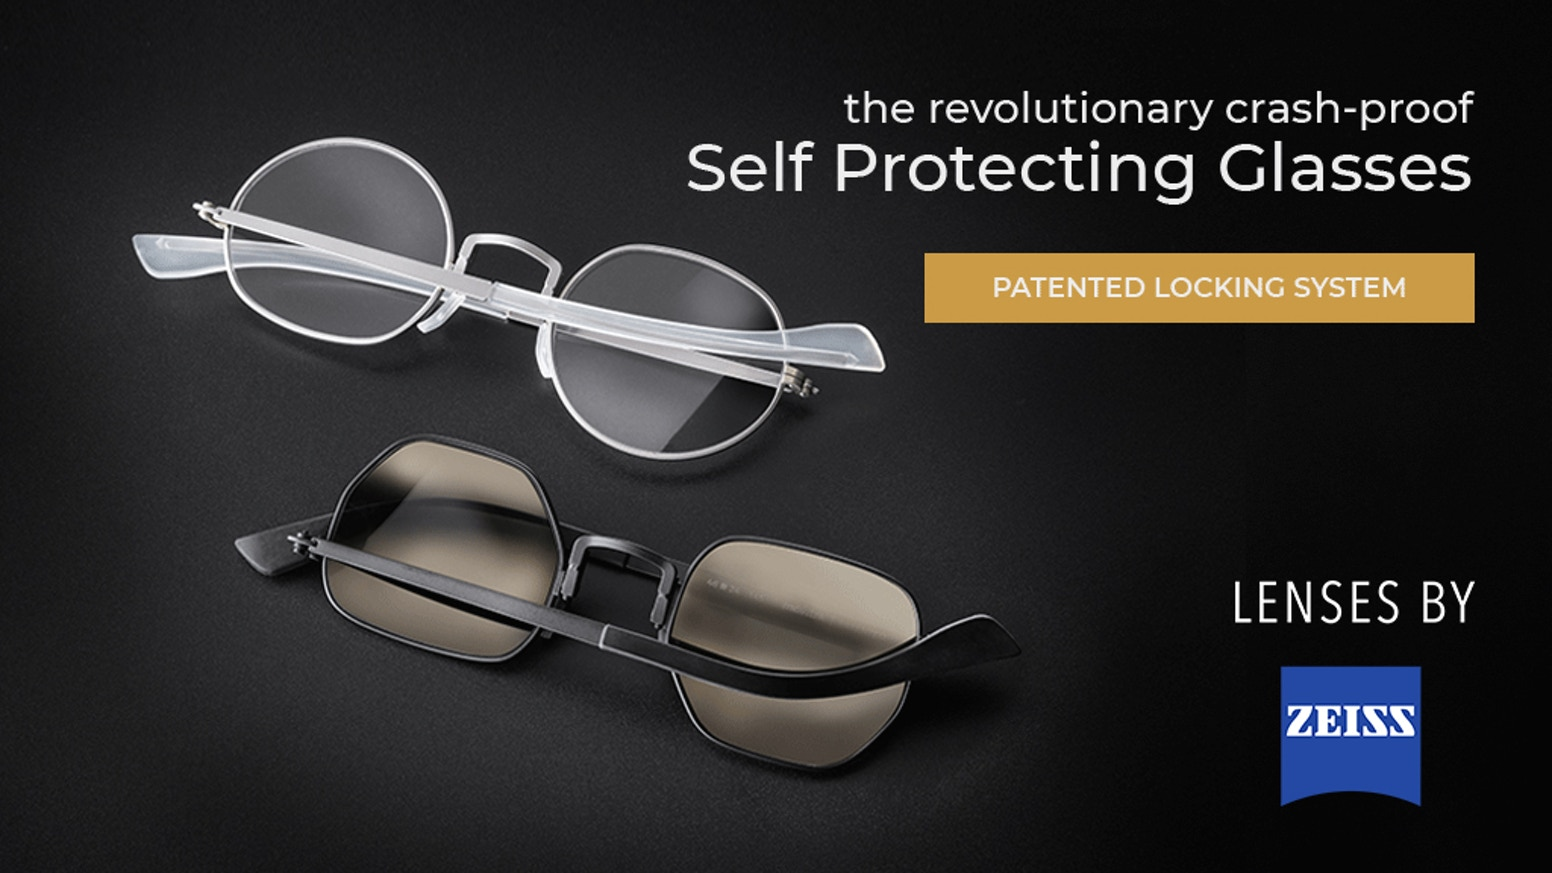 The Strongest, Thinnest, Lightweight Titanium eyewear made in Italy with a Patented Locking System and Carl Zeiss lenses built to last